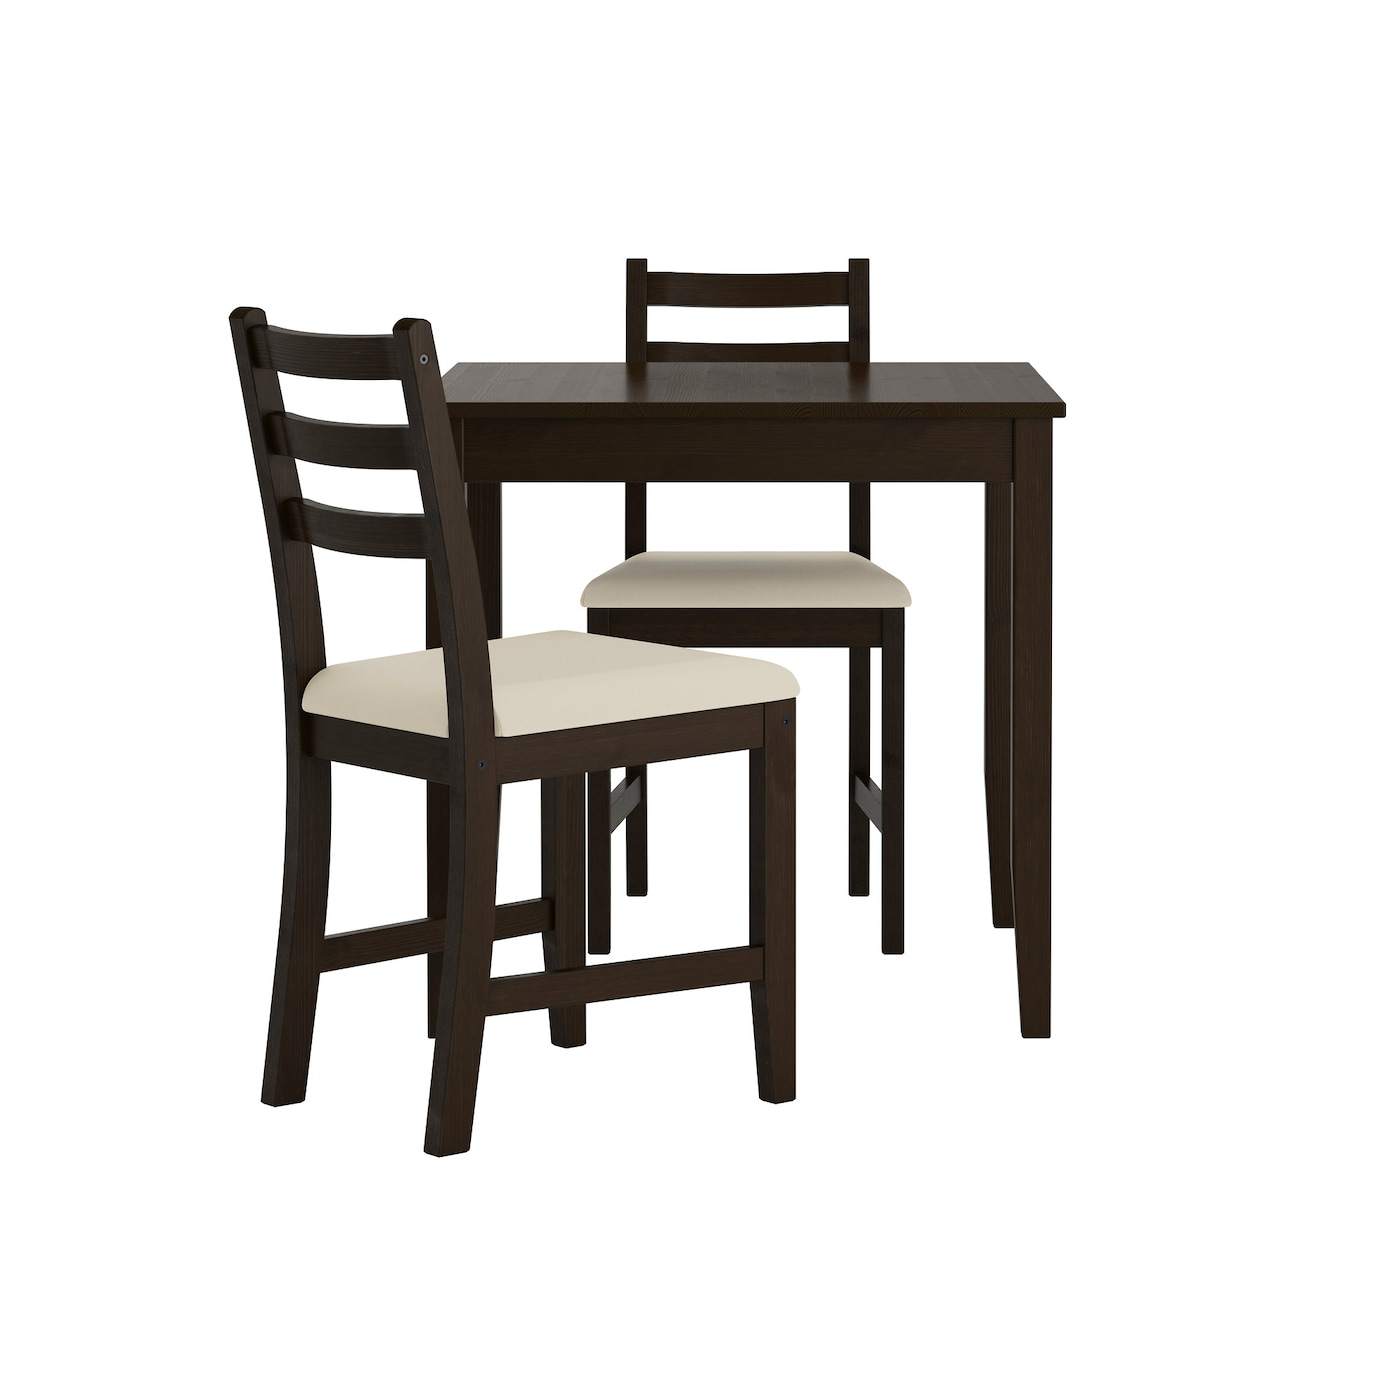 Ikea Lerhamn Table And 2 Chairs